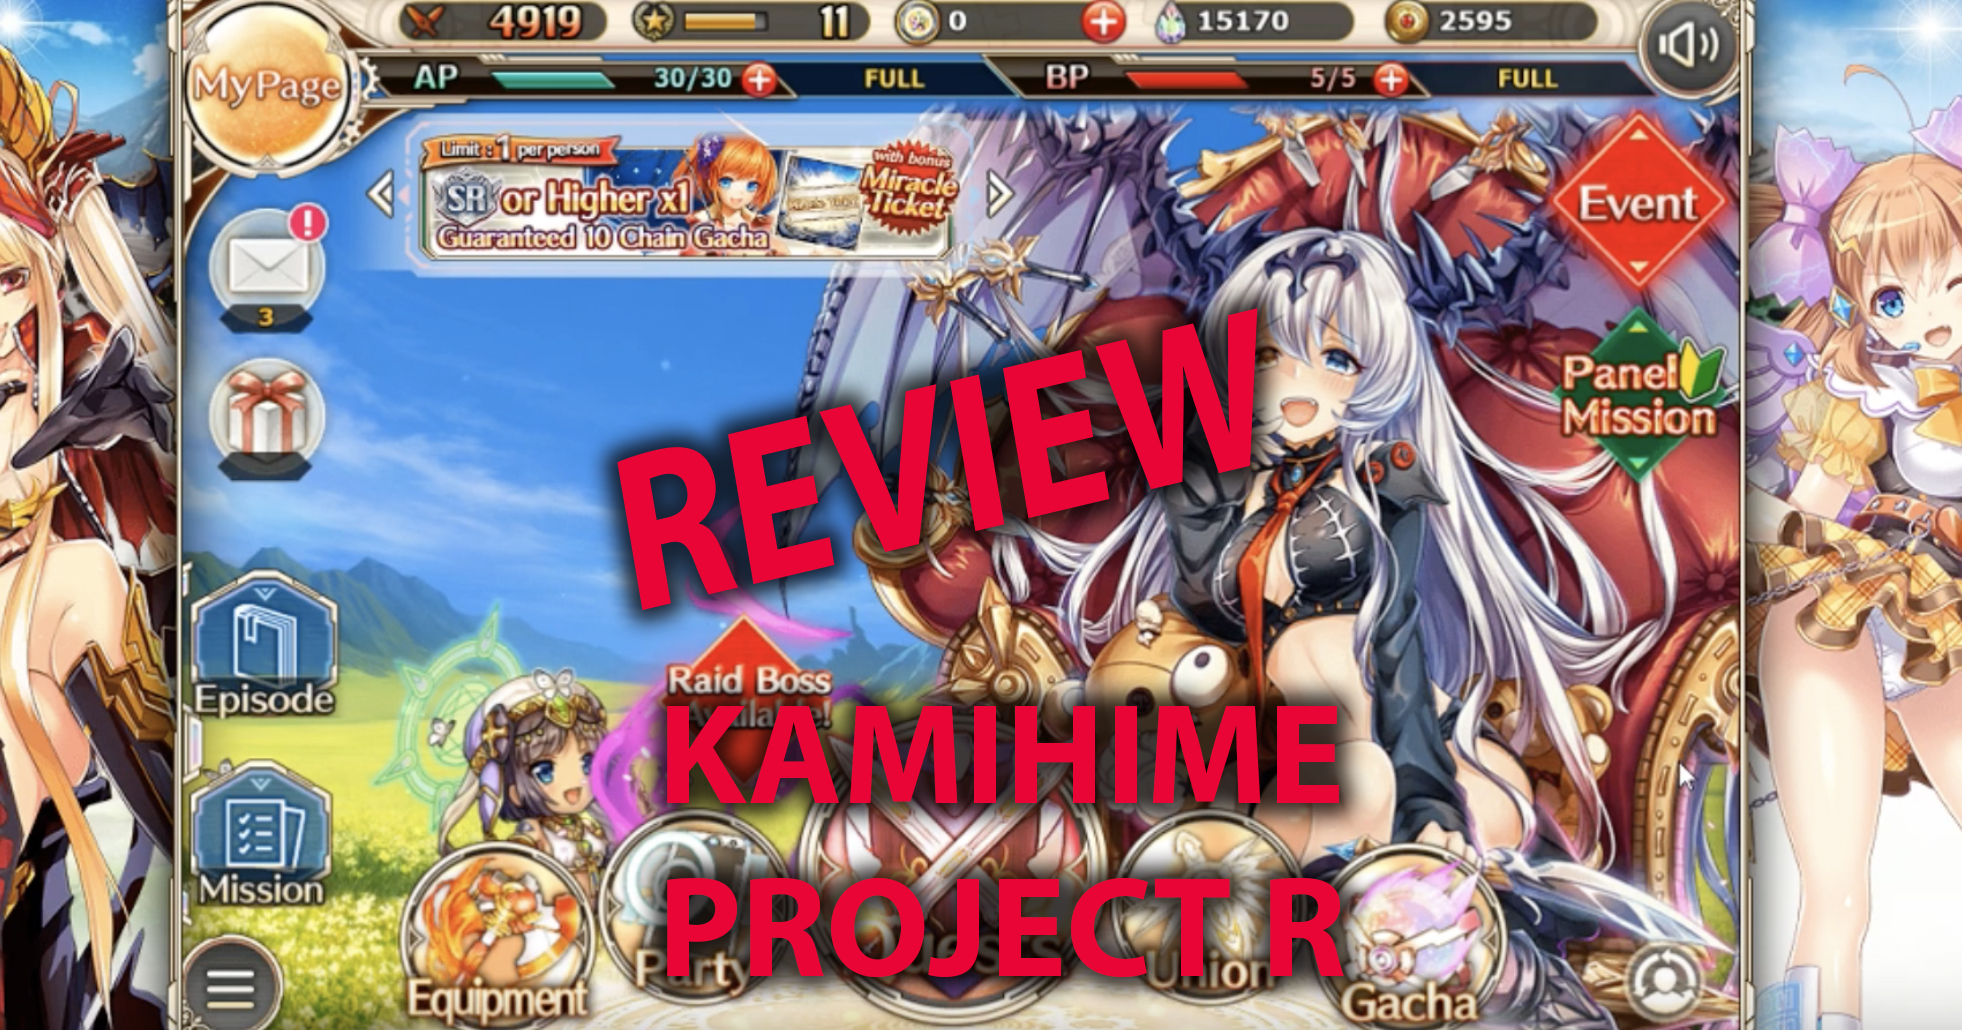 Kamihime Project R feature image